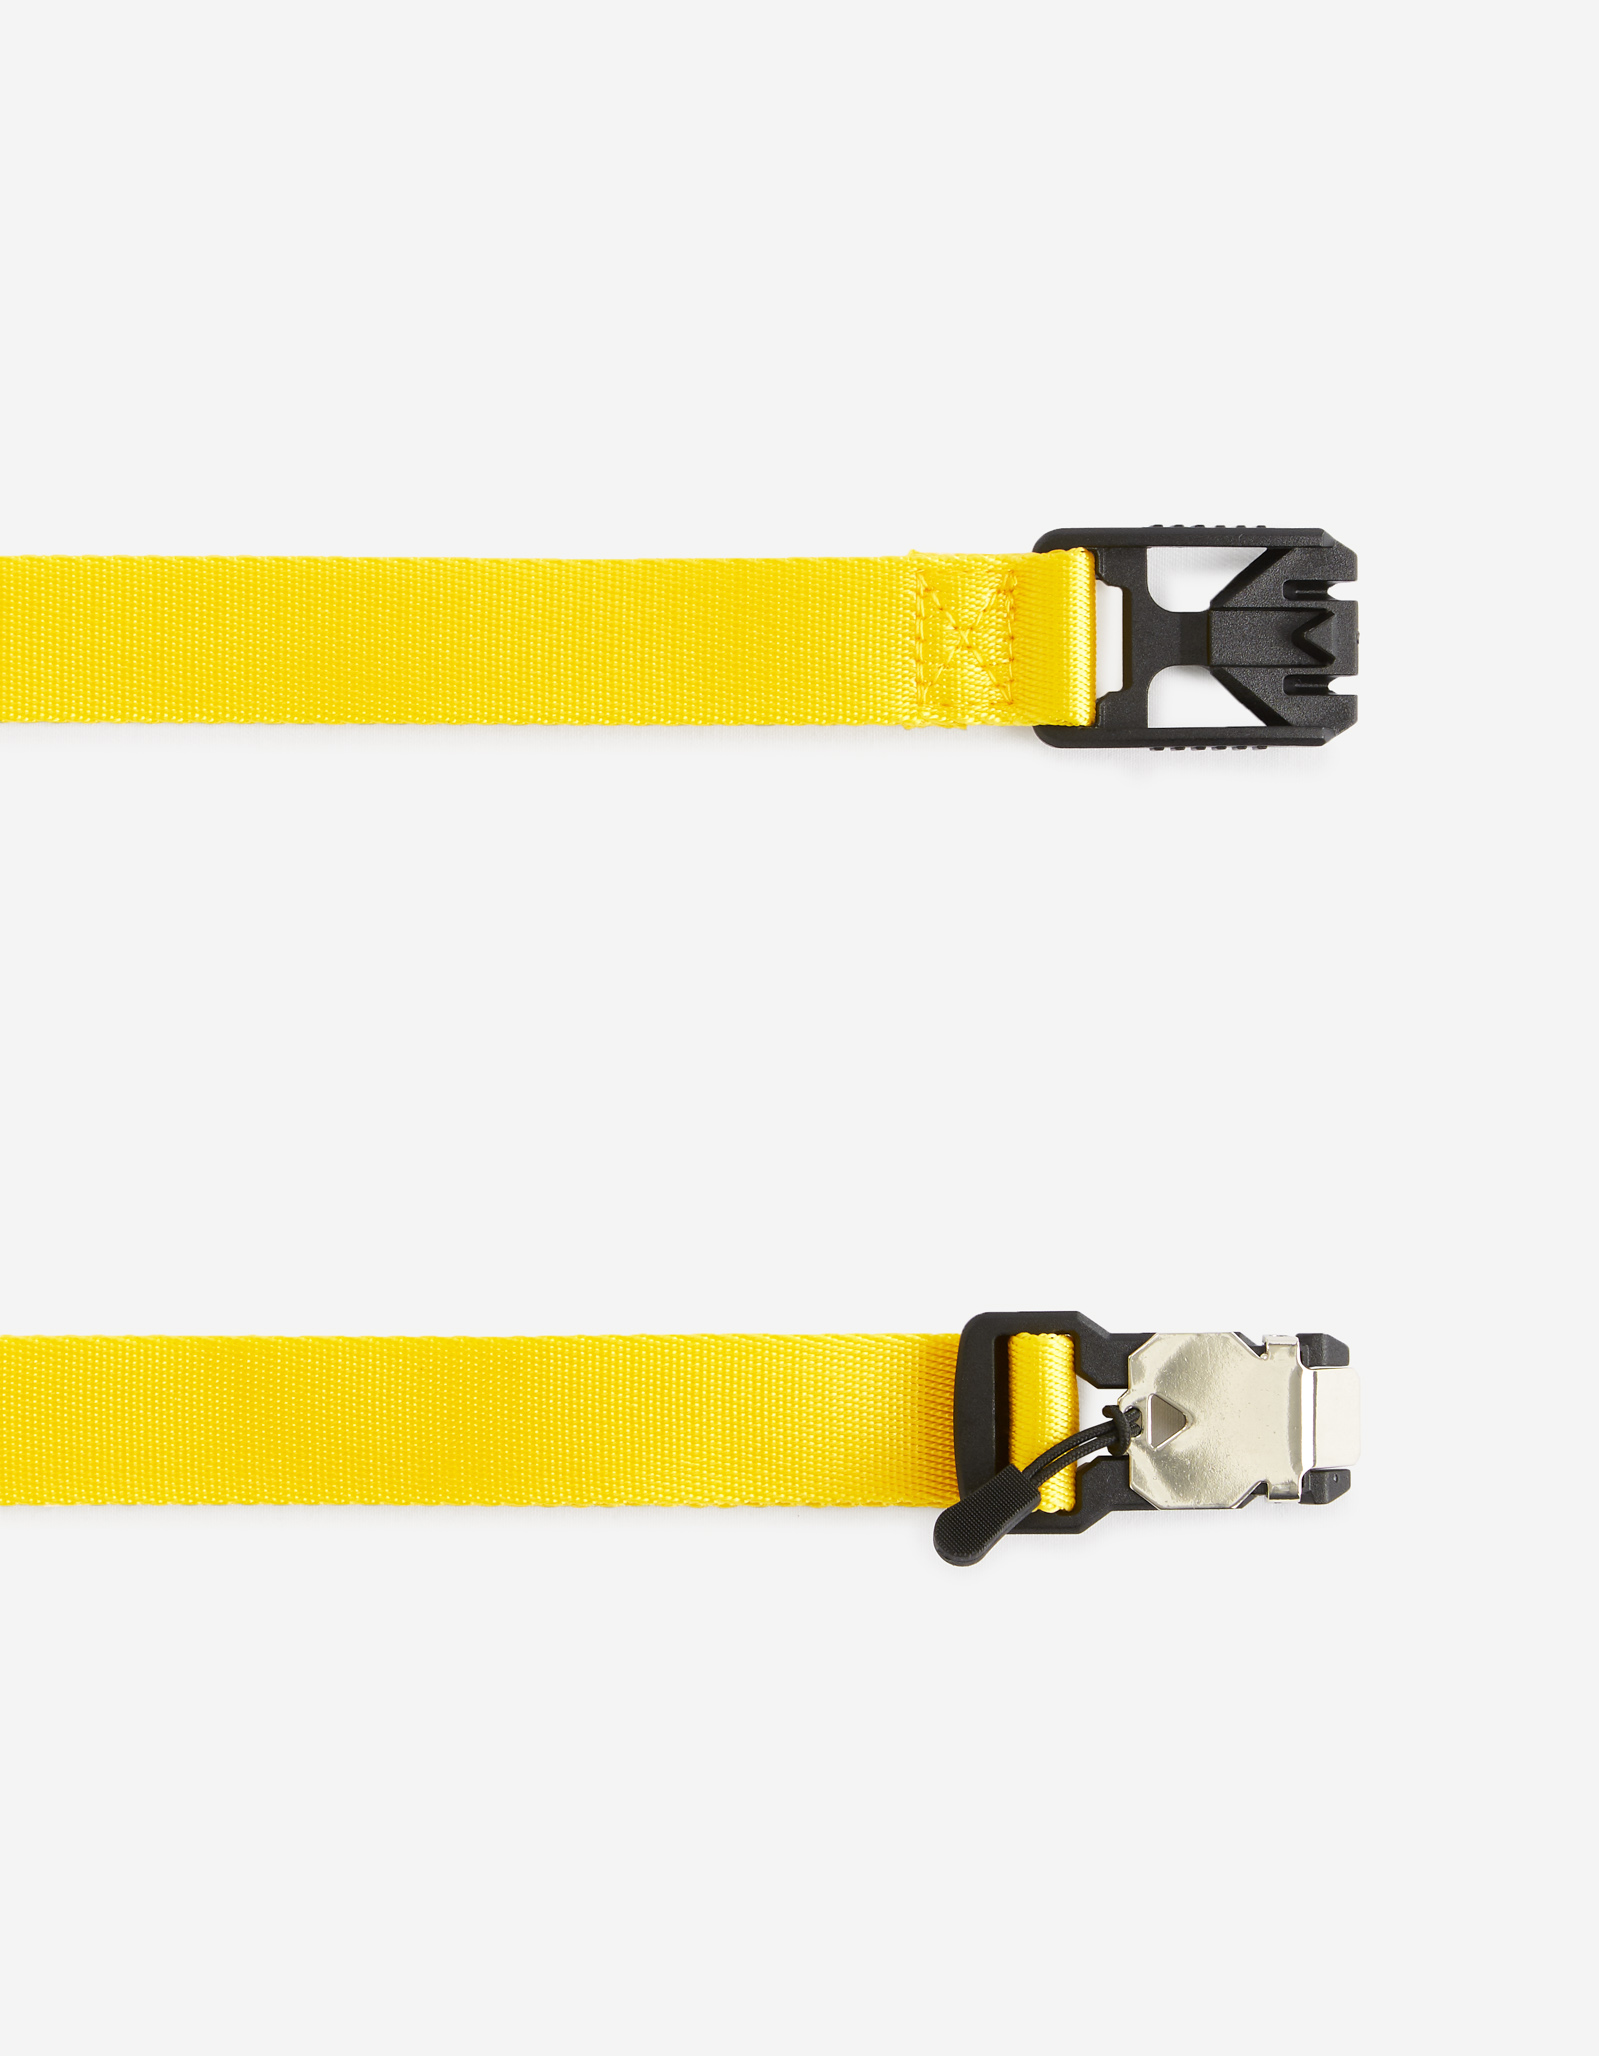 RIBBON_YELLOW_7